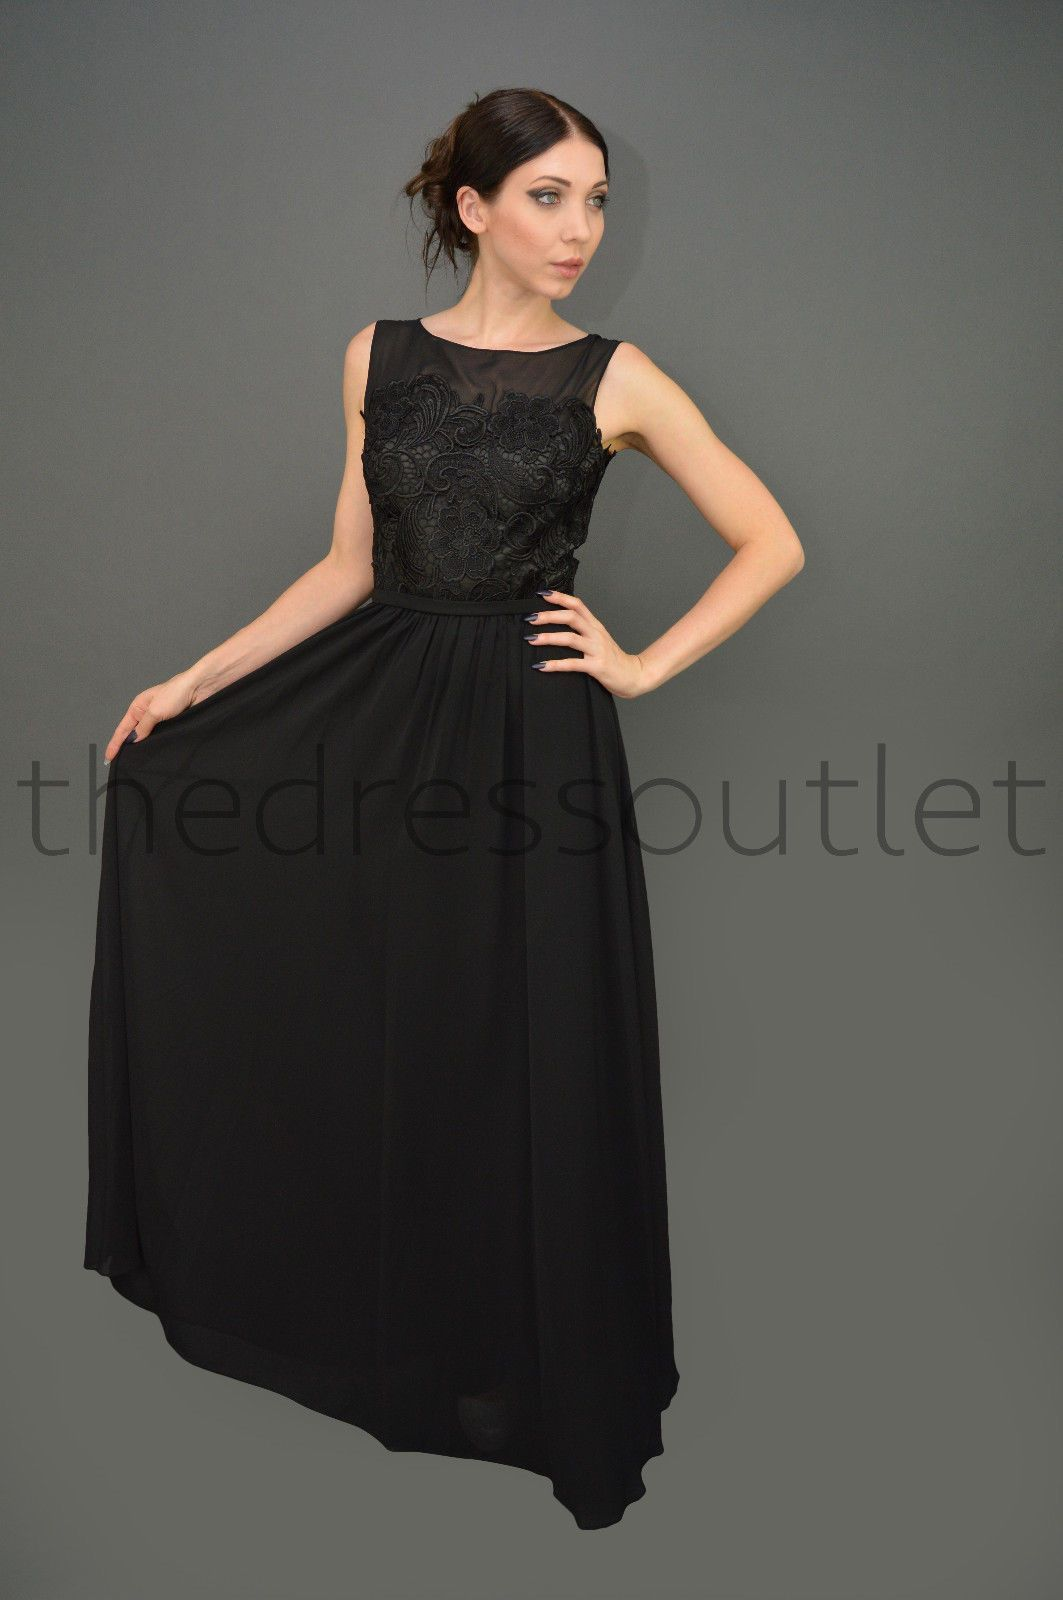 A classical dress with some trendy elements for your fashionistas